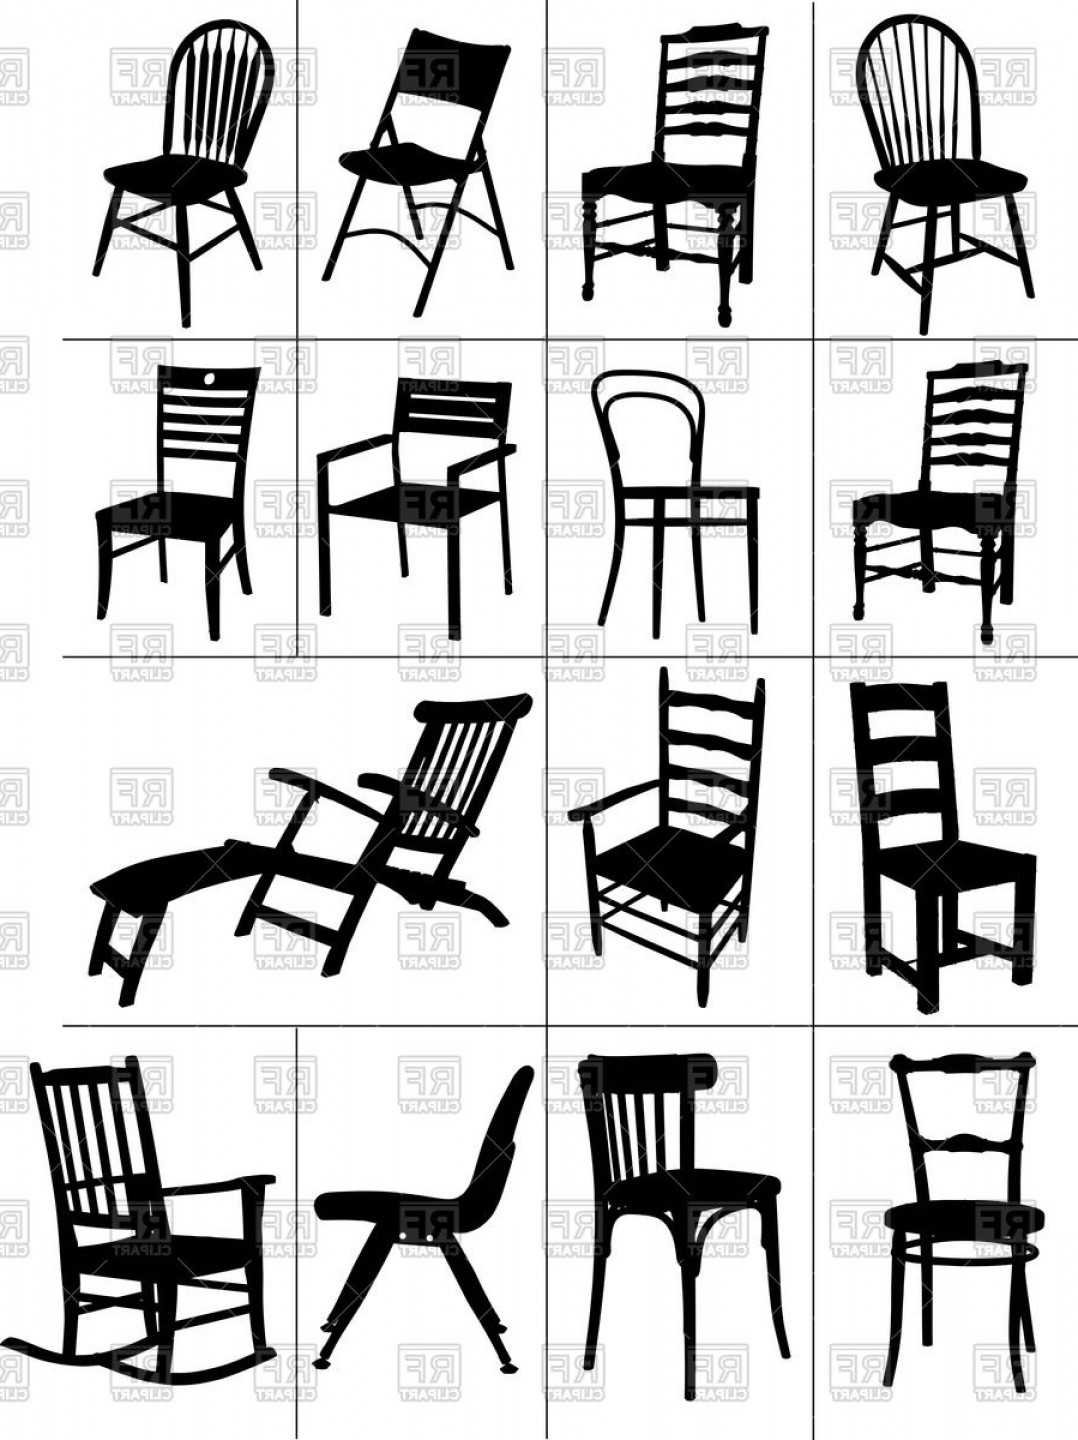 Rocking Chair Silhouette. Plain Silhouette Rocking Chair Silhouette Chair  Silhouette Vector Silhouettes Of Home Chairs